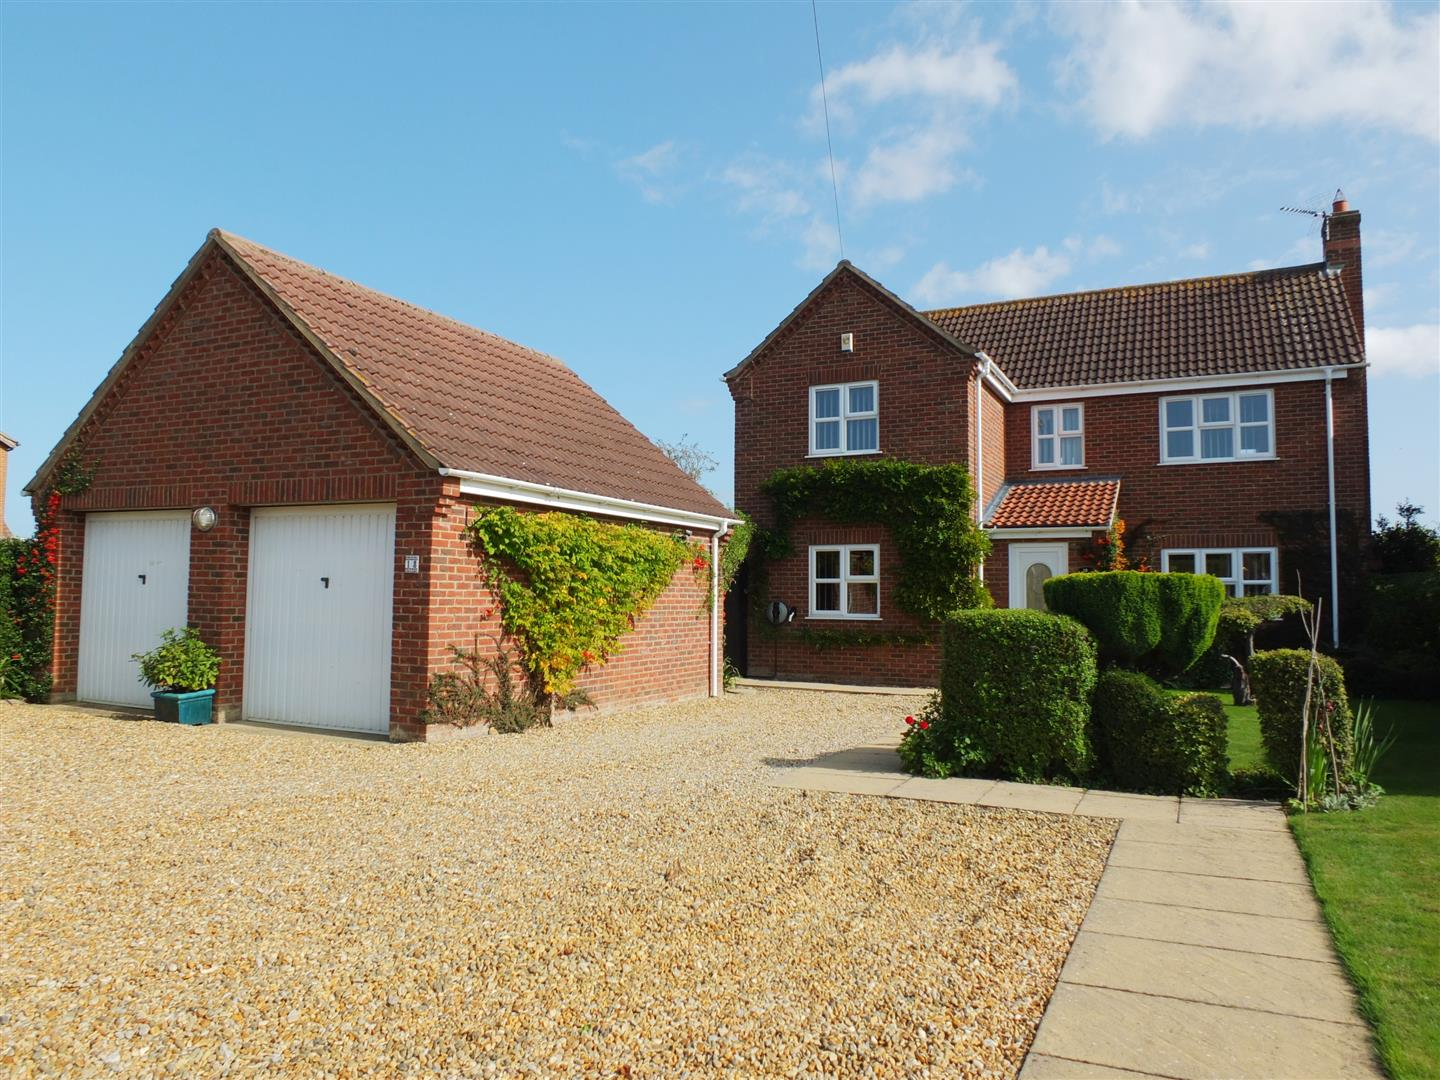 4 bed detached house for sale in Lutton Spalding, PE12 9HP - Property Image 1